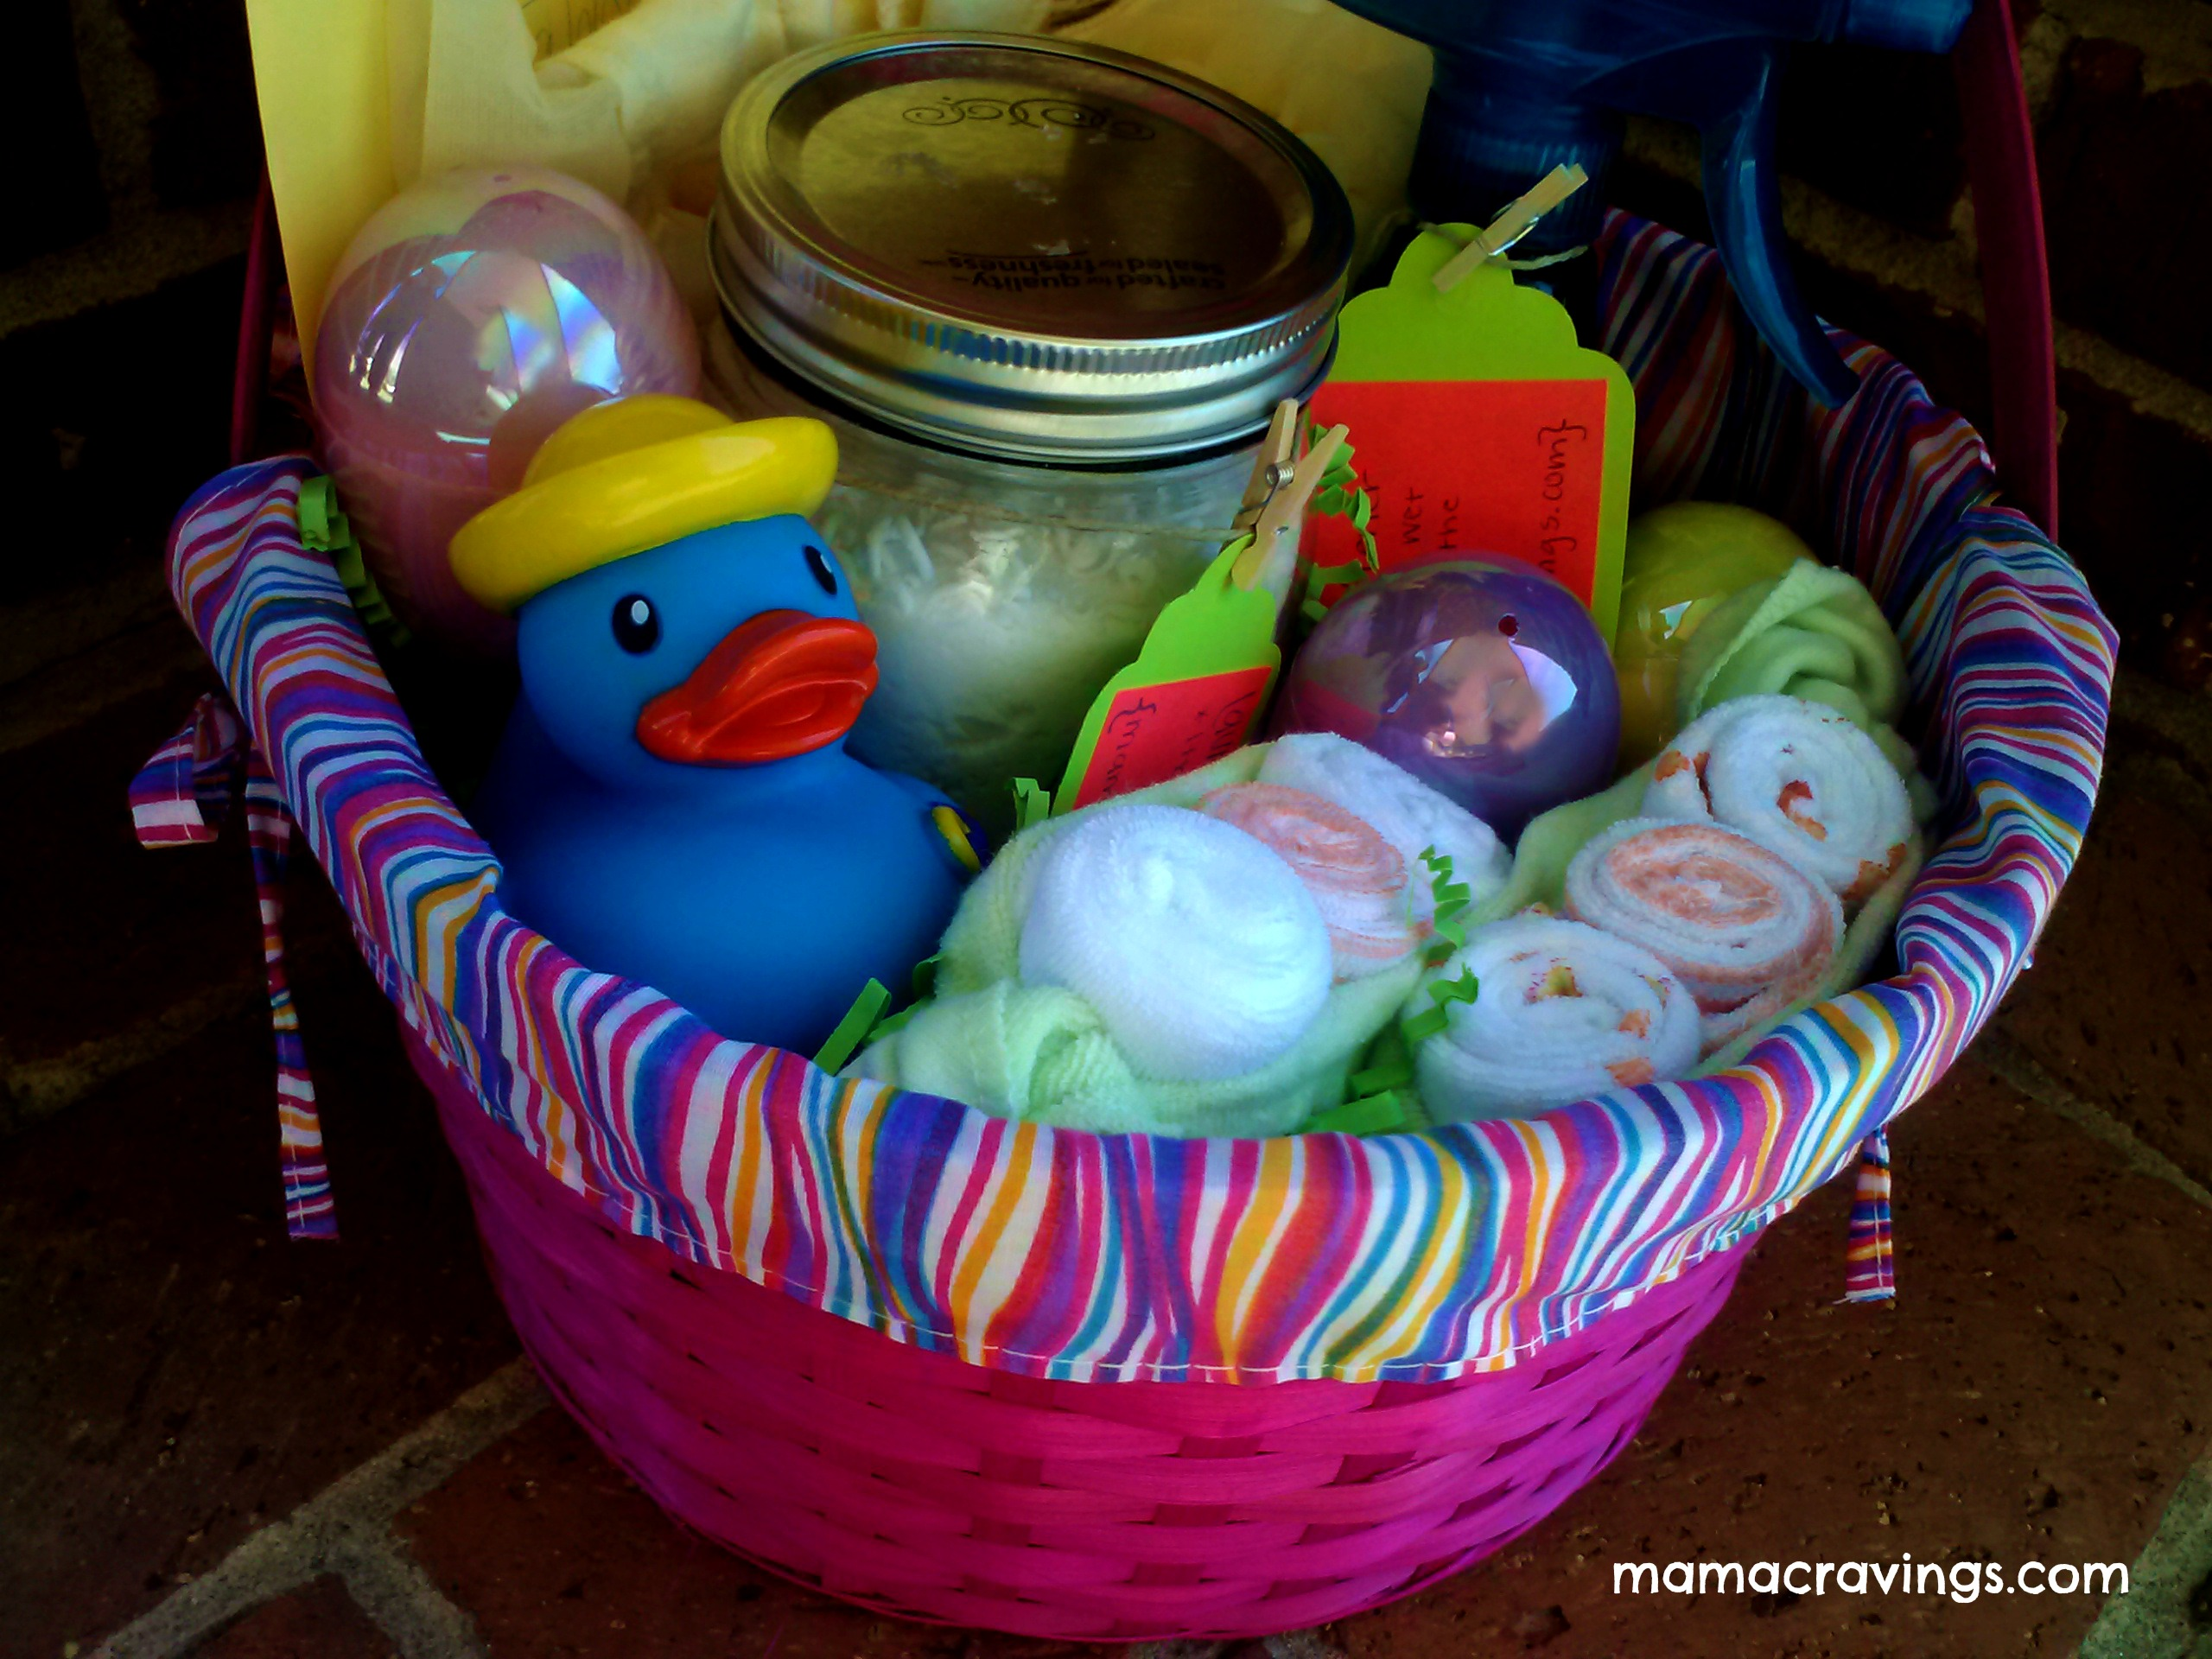 Inspiration for spring baby gift easter basket mamacravings 0316131333a negle Choice Image